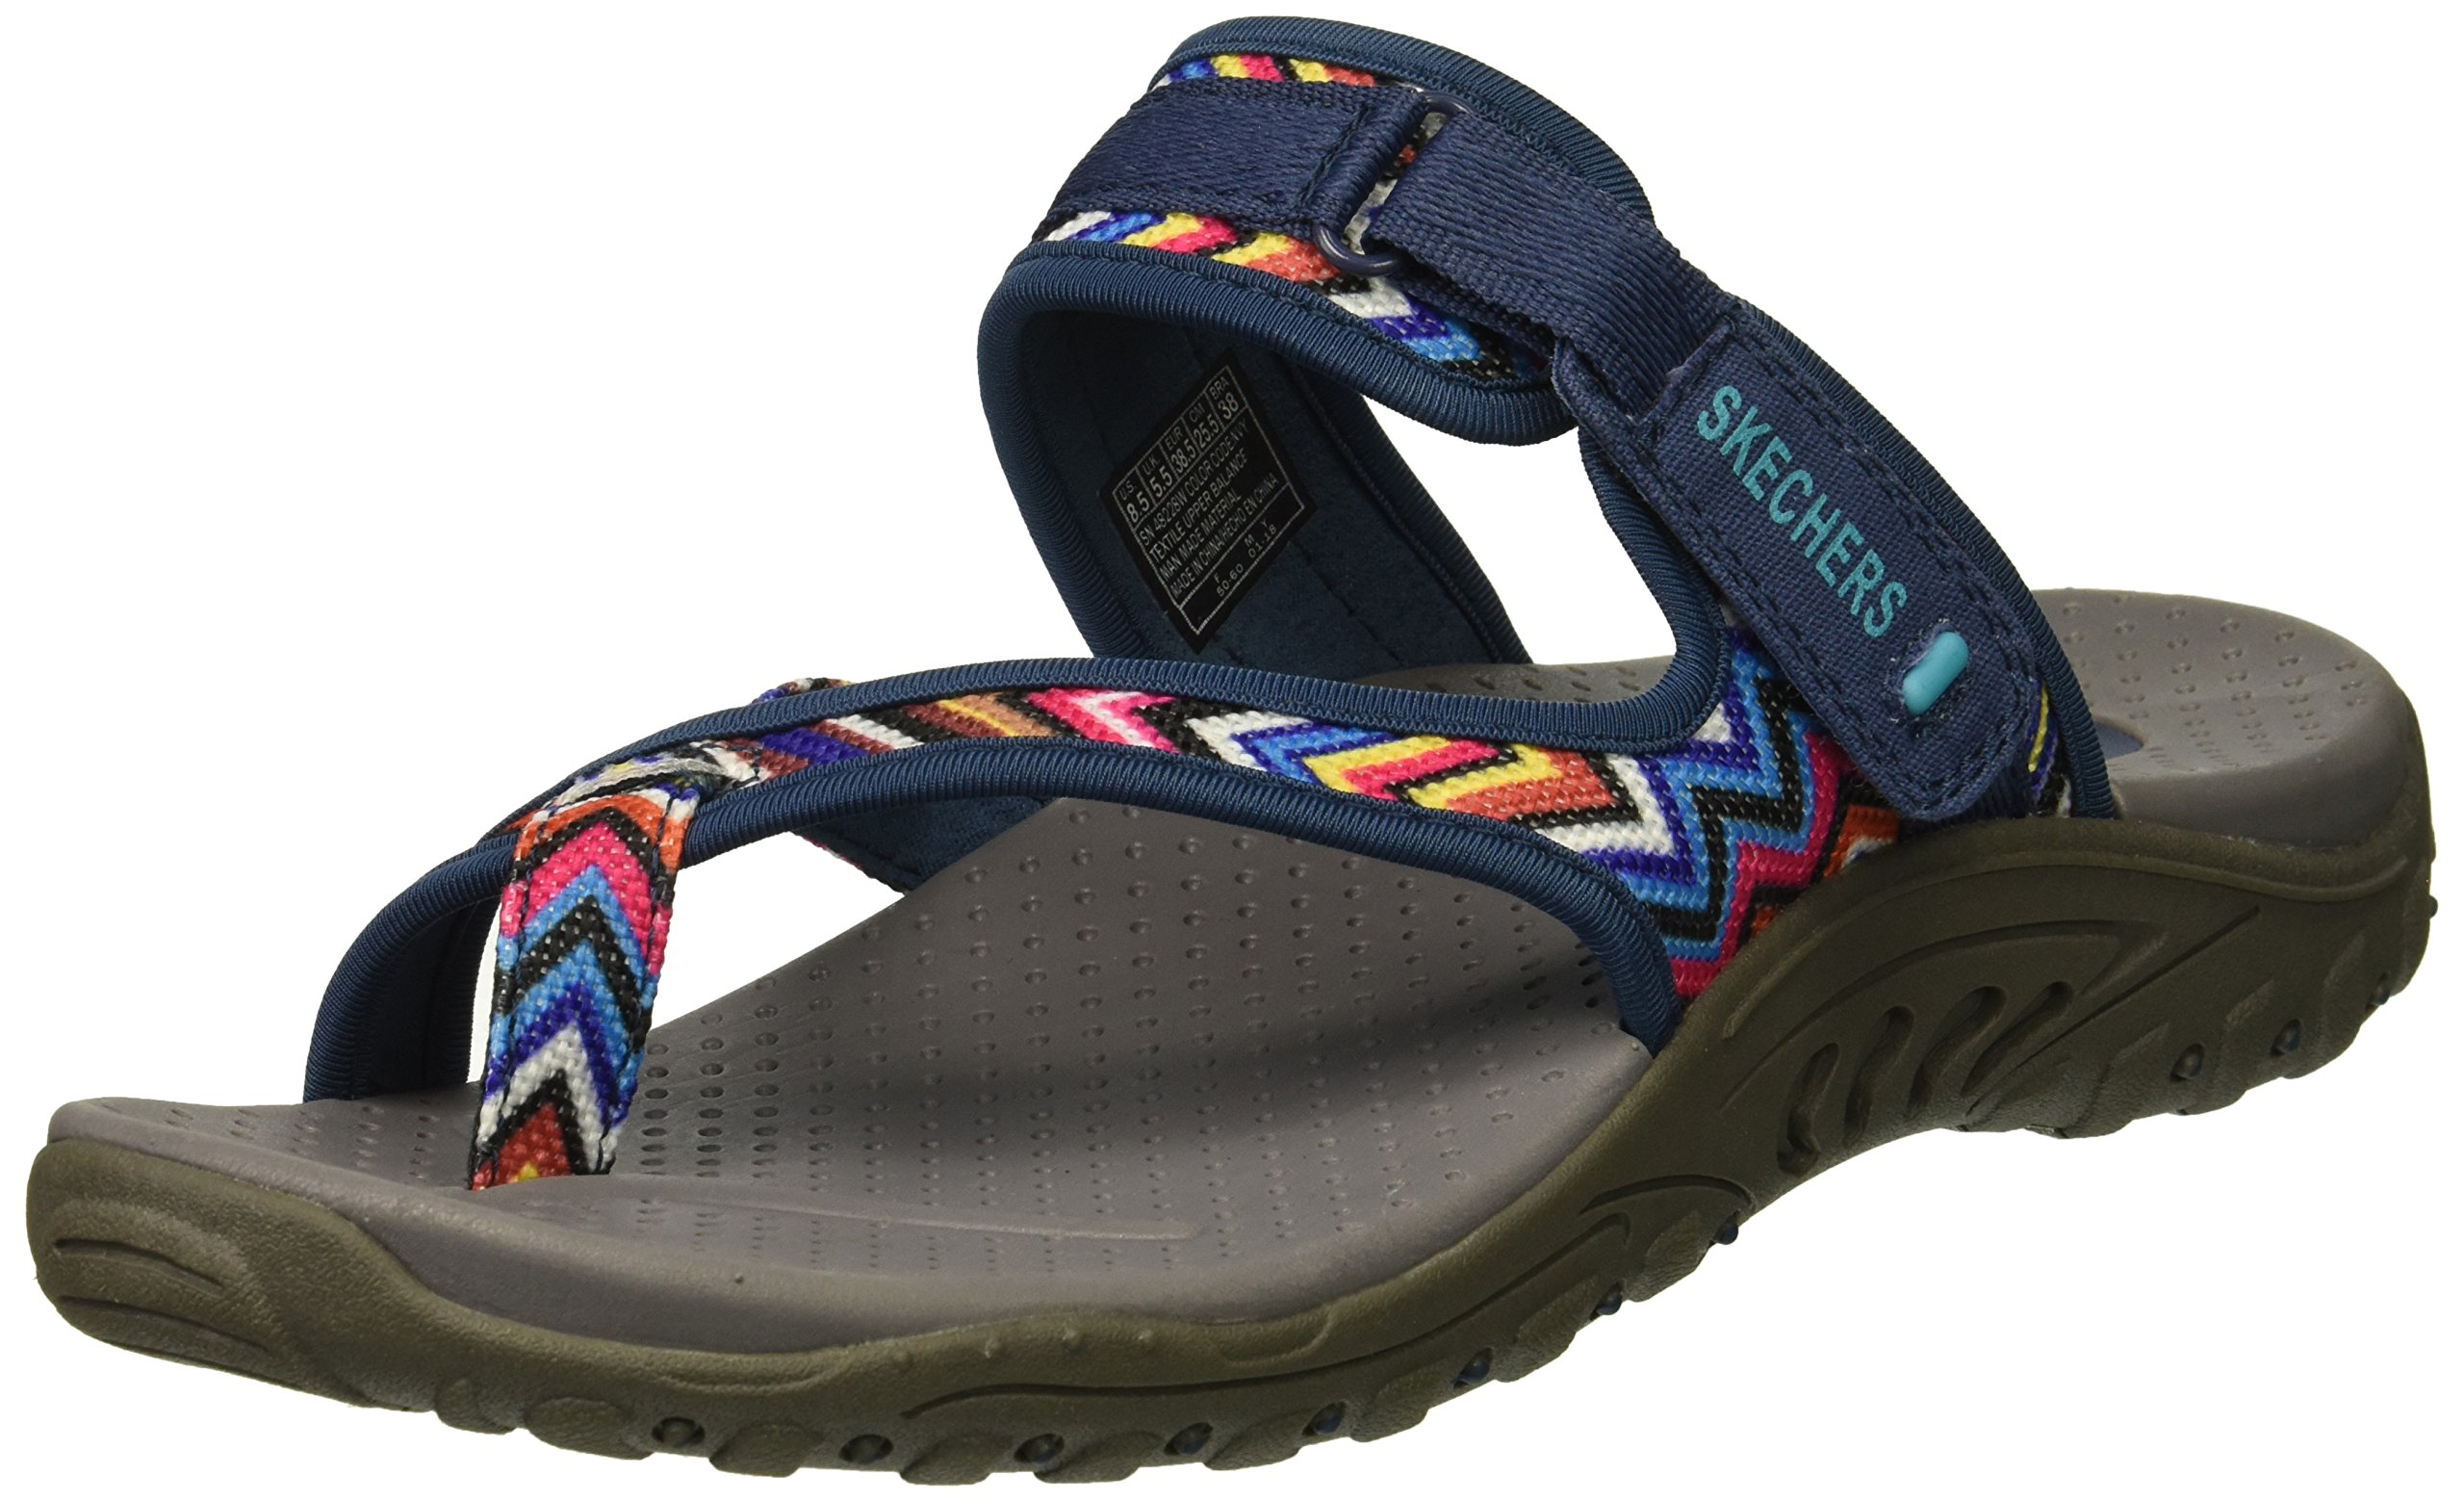 3b1b2070ca0960 Best Rated in Women s Sandals   Helpful Customer Reviews - Amazon.com